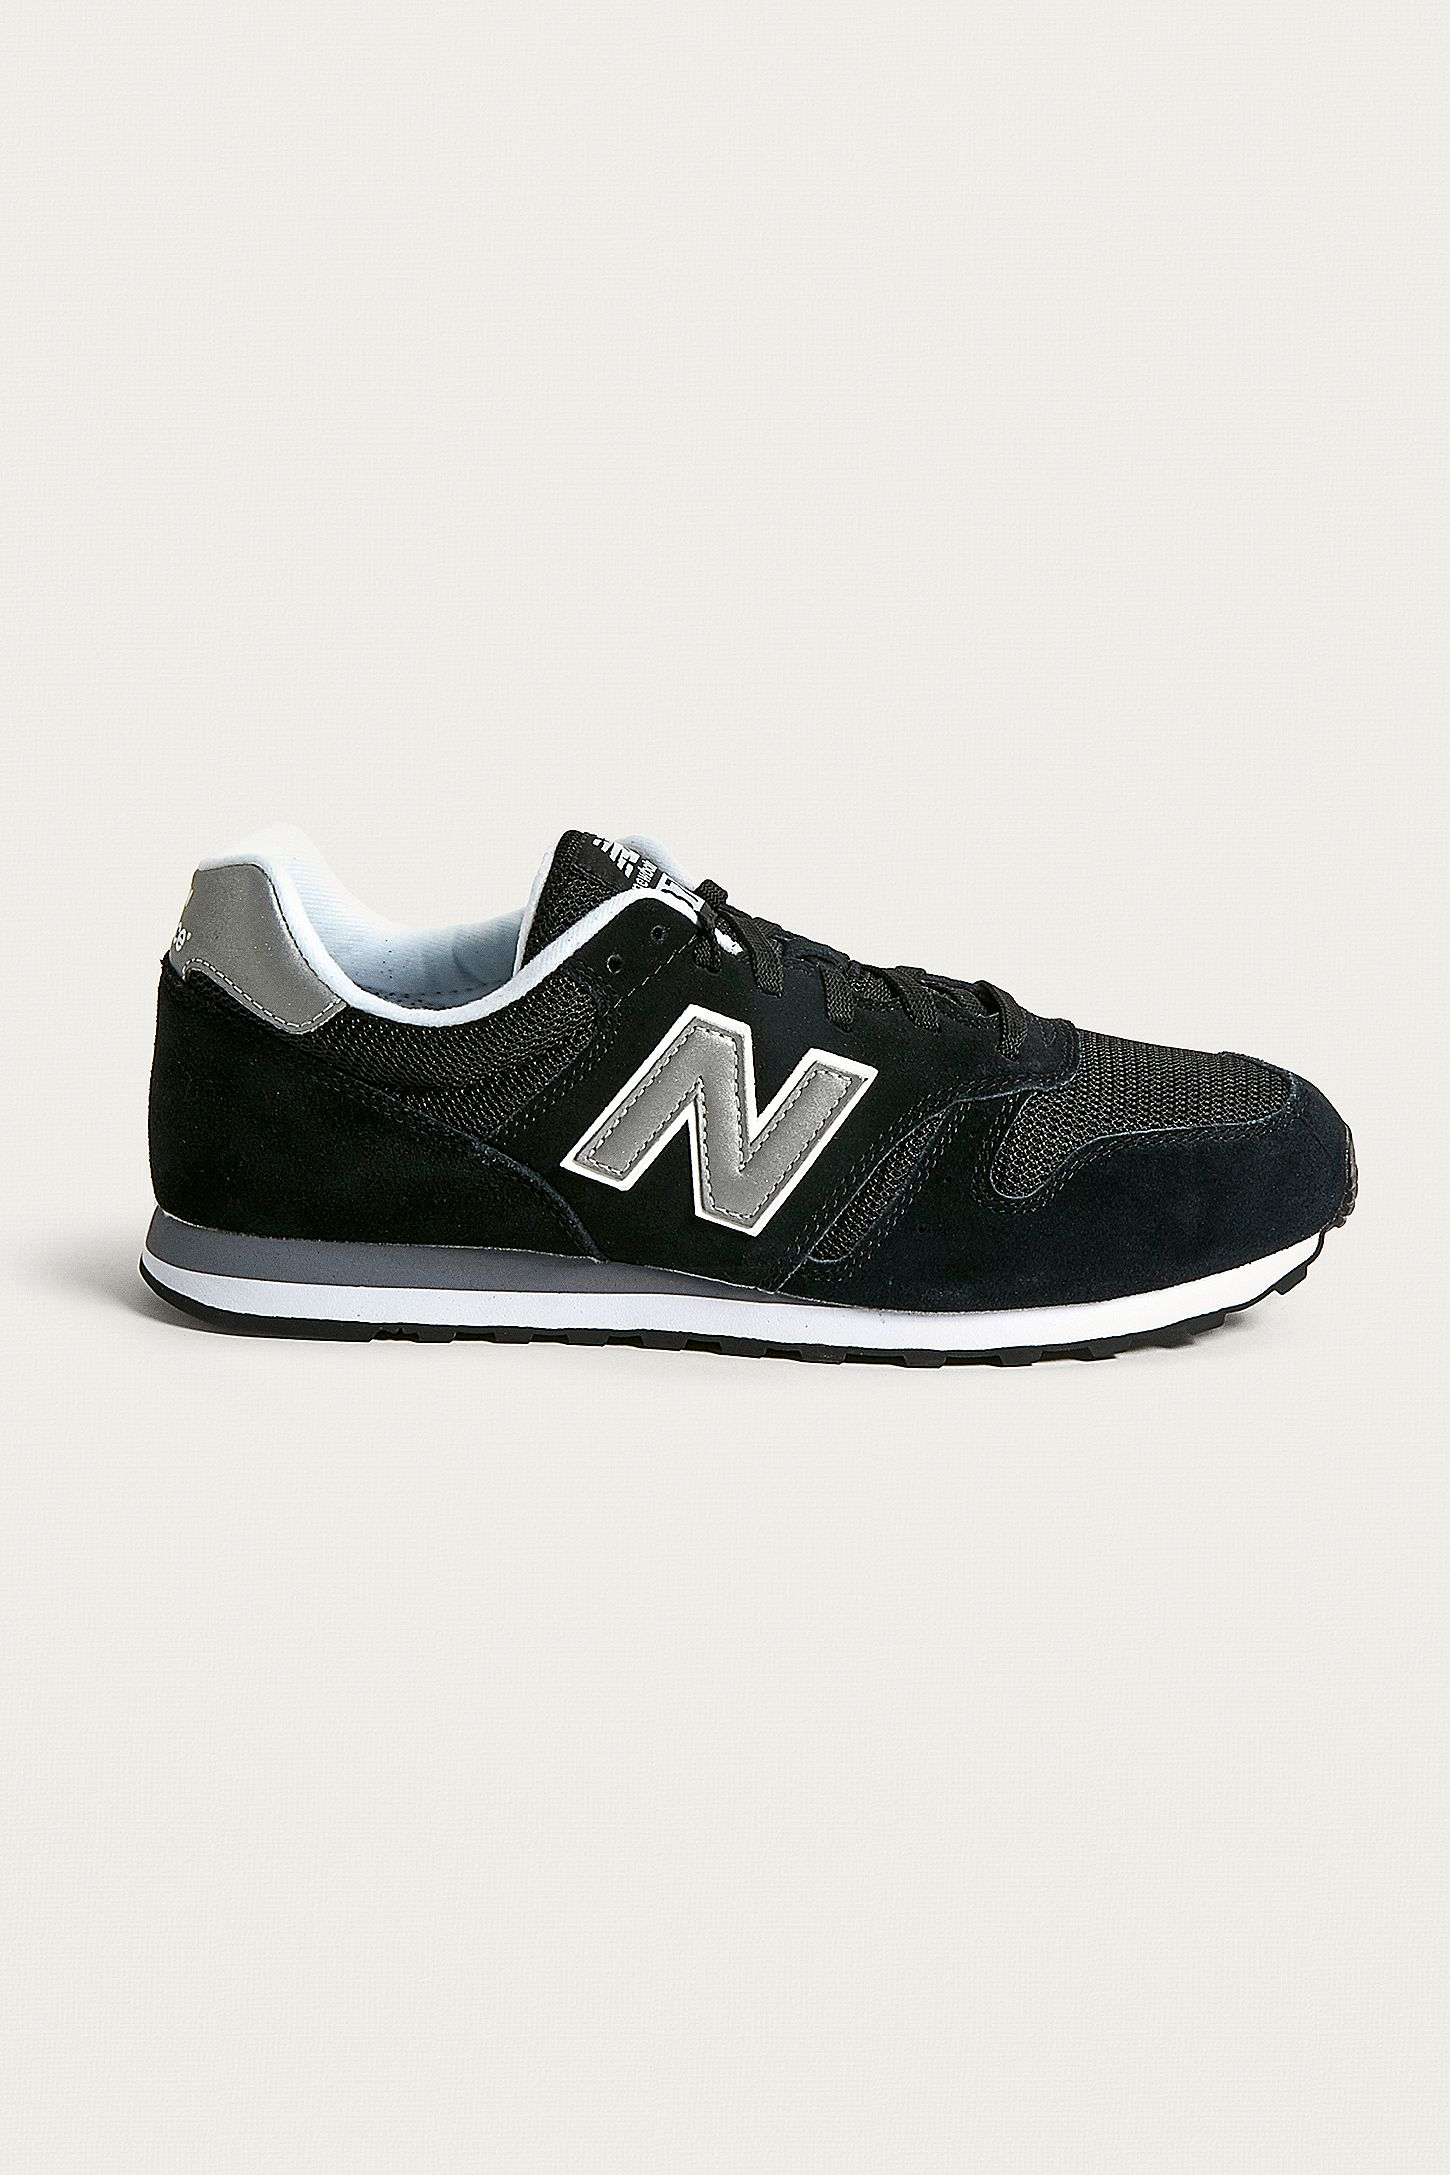 new concept 5ed29 33b4a New Balance 373 Black Trainers. Click on image to zoom. Hover to zoom.  Double Tap to Zoom